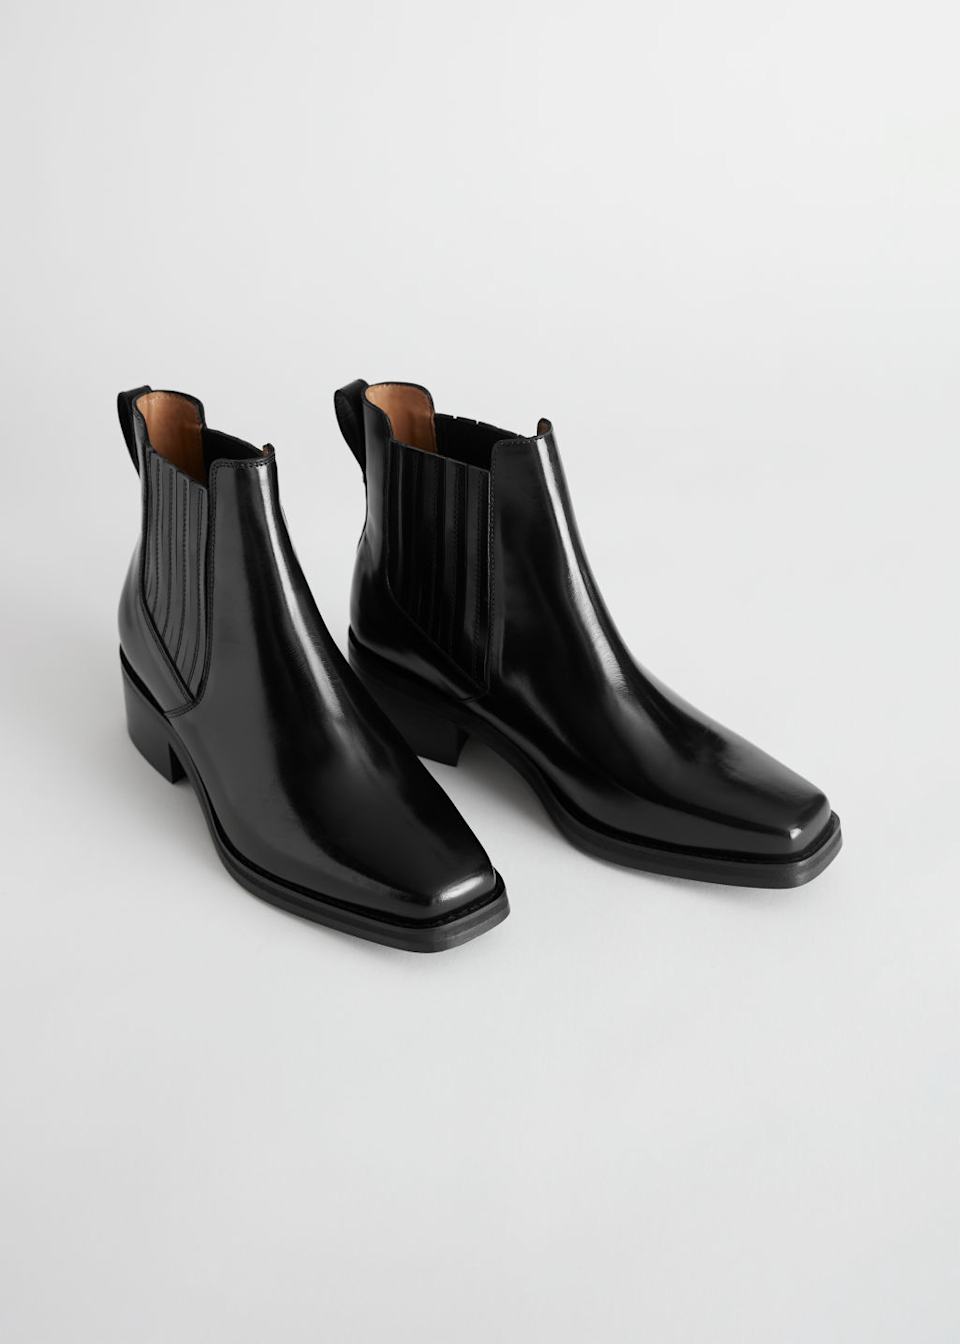 """<h3>Square Toe</h3><br>We're welcoming this '90s-inspired silhouette back for fall, and you can find it in a variety of styles. Use it to add a dose of vintage flair to any look.<br><br><strong>& Other Stories</strong> Square Toe Leather Ankle Boots, $, available at <a href=""""https://go.skimresources.com/?id=30283X879131&url=https%3A%2F%2Fwww.stories.com%2Fen_usd%2Fshoes%2Fboots%2Fchelseaboots%2Fproduct.square-toe-leather-ankle-boots-black.0817653001.html"""" rel=""""nofollow noopener"""" target=""""_blank"""" data-ylk=""""slk:& Other Stories"""" class=""""link rapid-noclick-resp"""">& Other Stories</a>"""